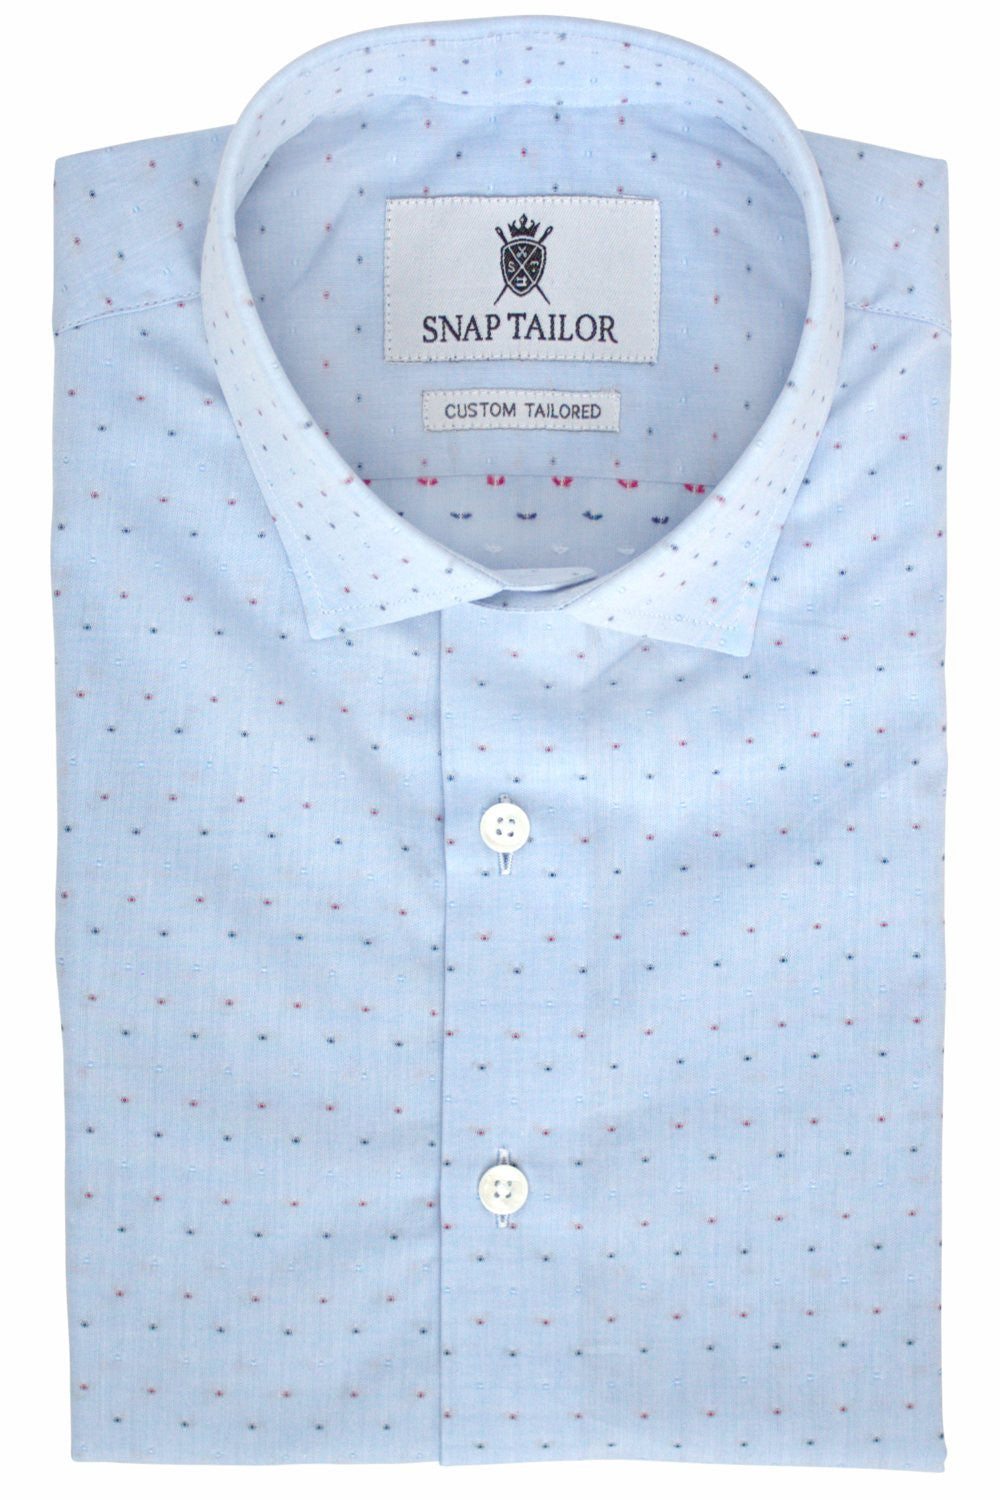 "Photo of Red White and Blue Dots Casual Shirt in Blue. Shown with optional Seamless Placket. To order like this, add ""Seamless Placket"" to the Special Instructions box"